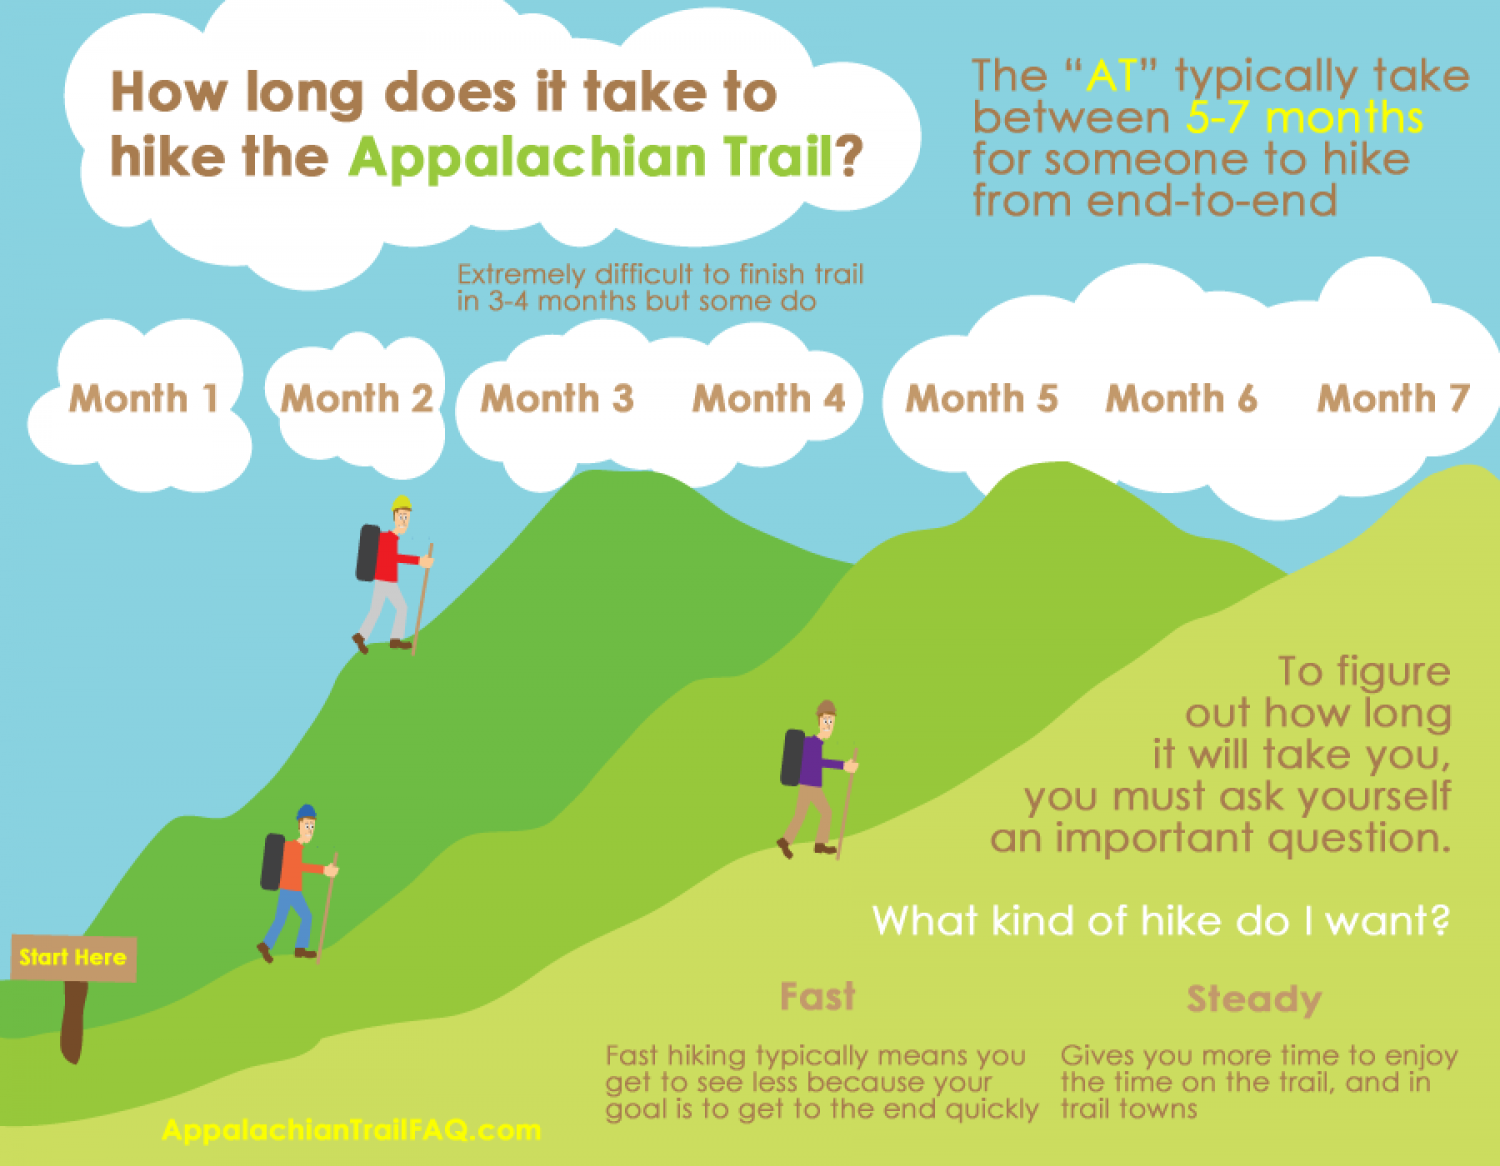 How Long Does It Take To Hike The Appalachian Trail? Infographic